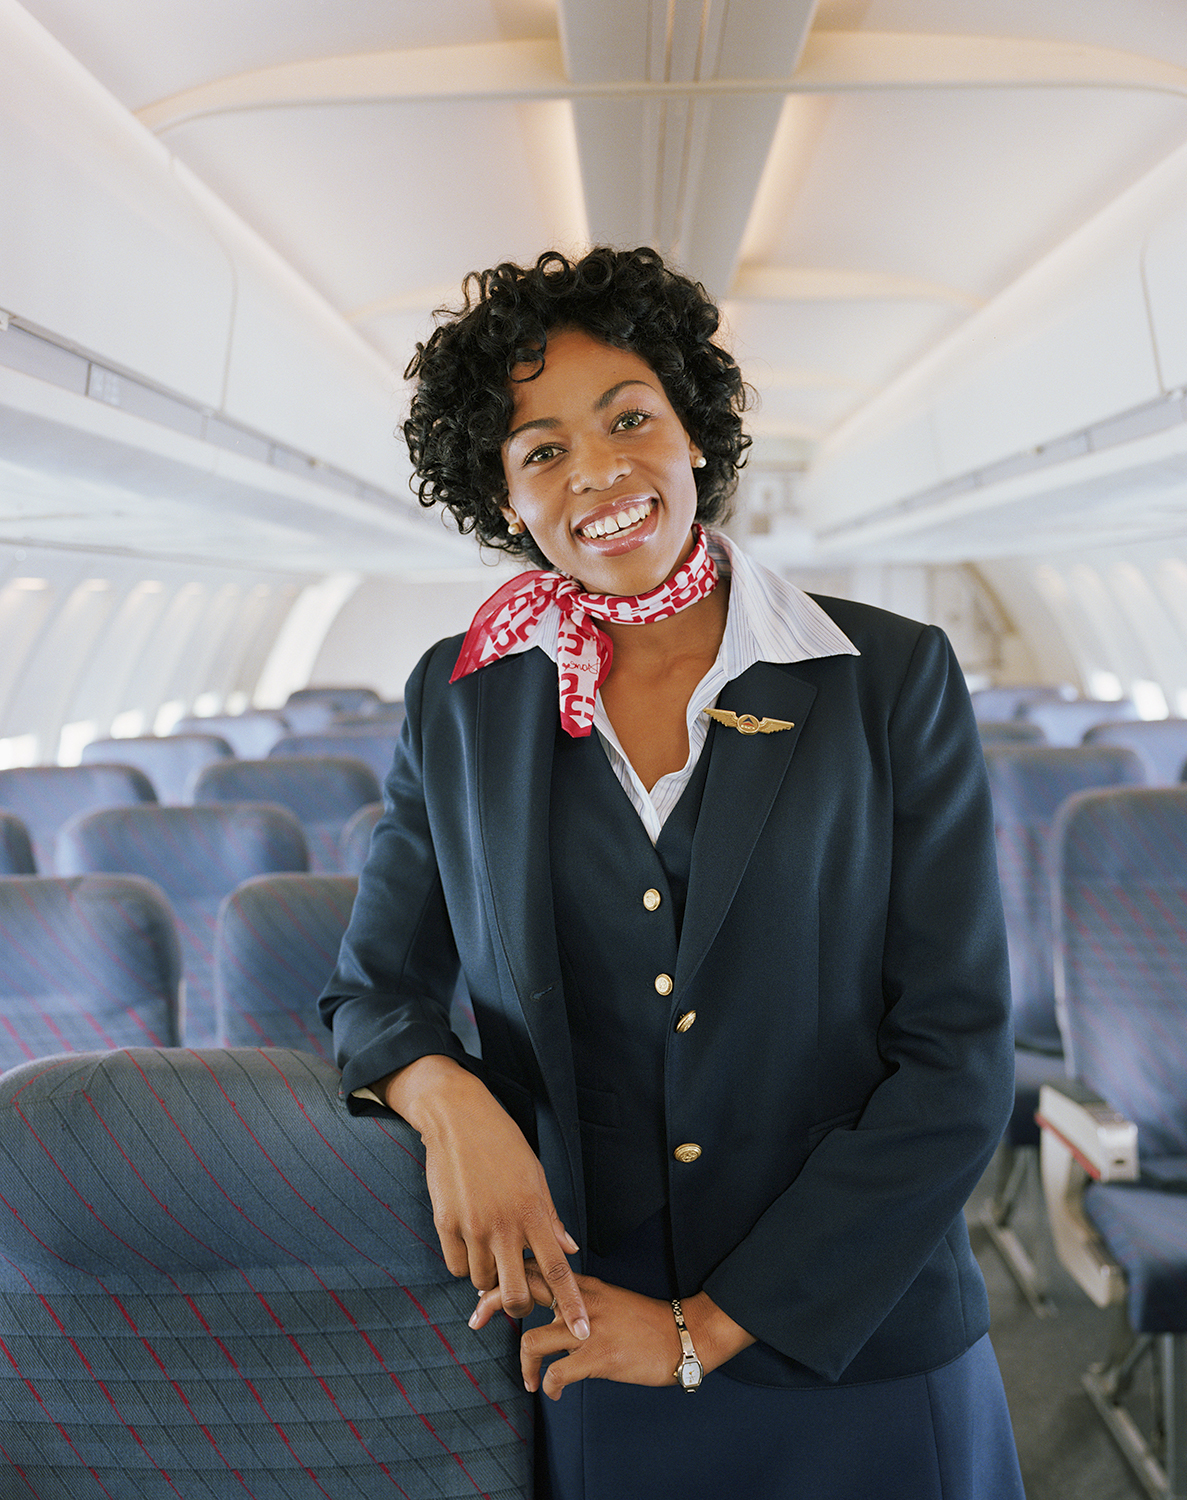 Airline Flight Attendant Smiling